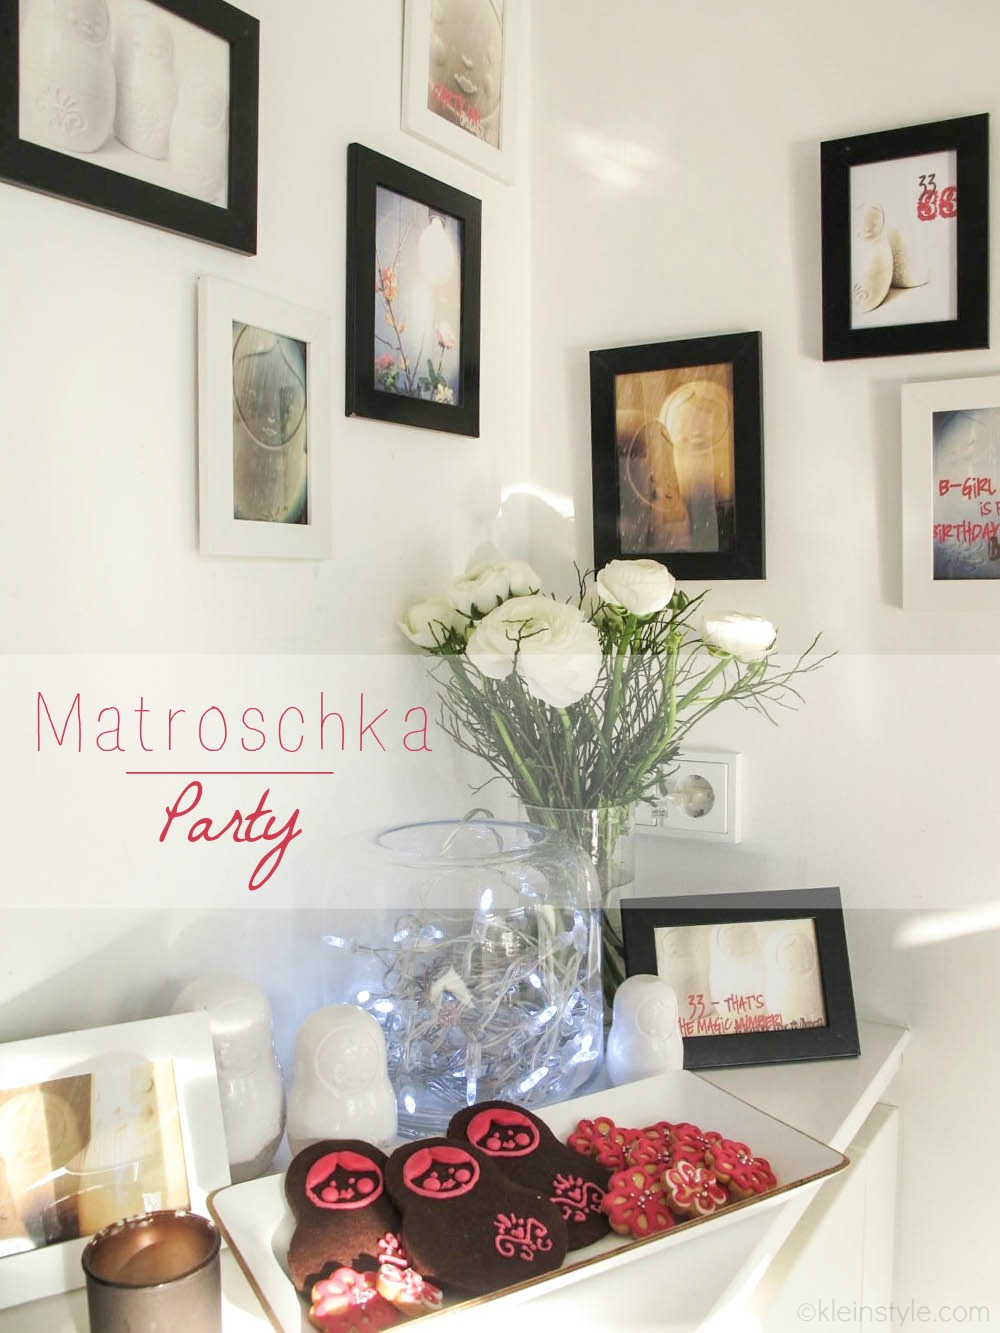 Matroschka party-cover pic ©kleinstyle